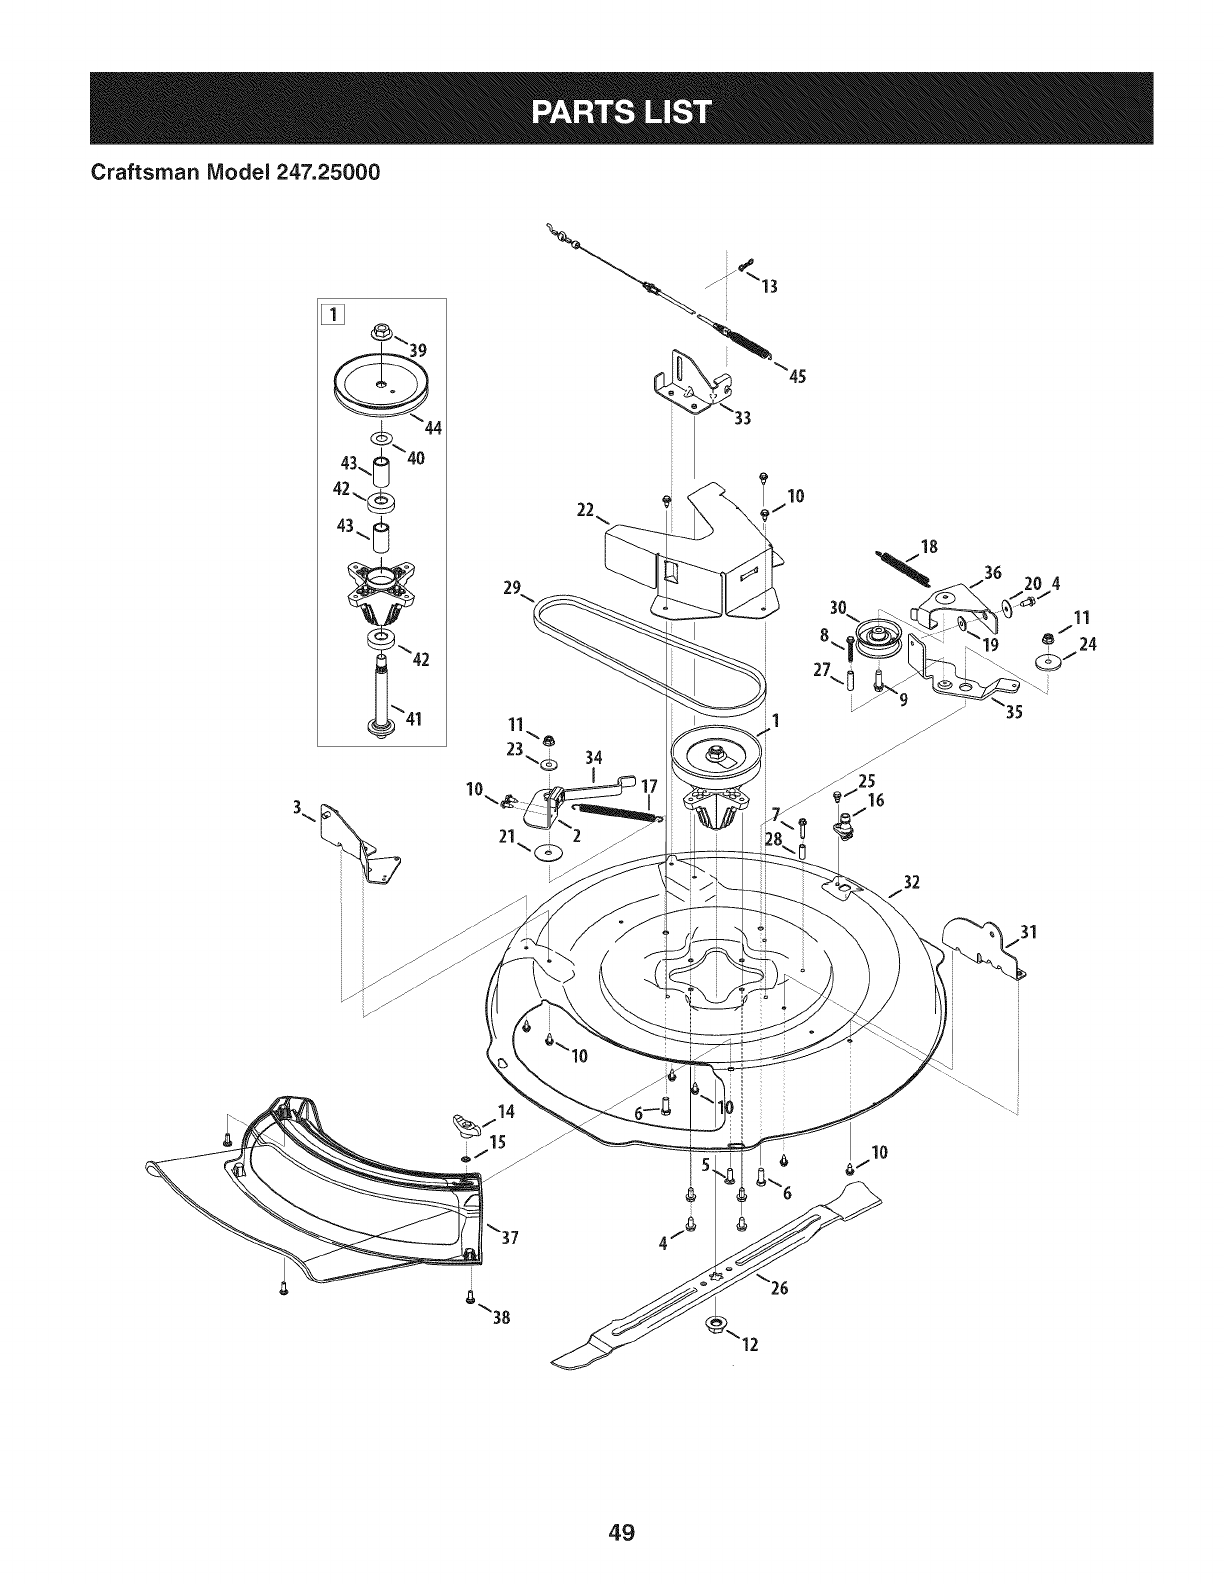 Mtd 13a226jd099 user manual riding mower manuals and guides 1204101l asset 31 html wiring diagram mag ognition wiring